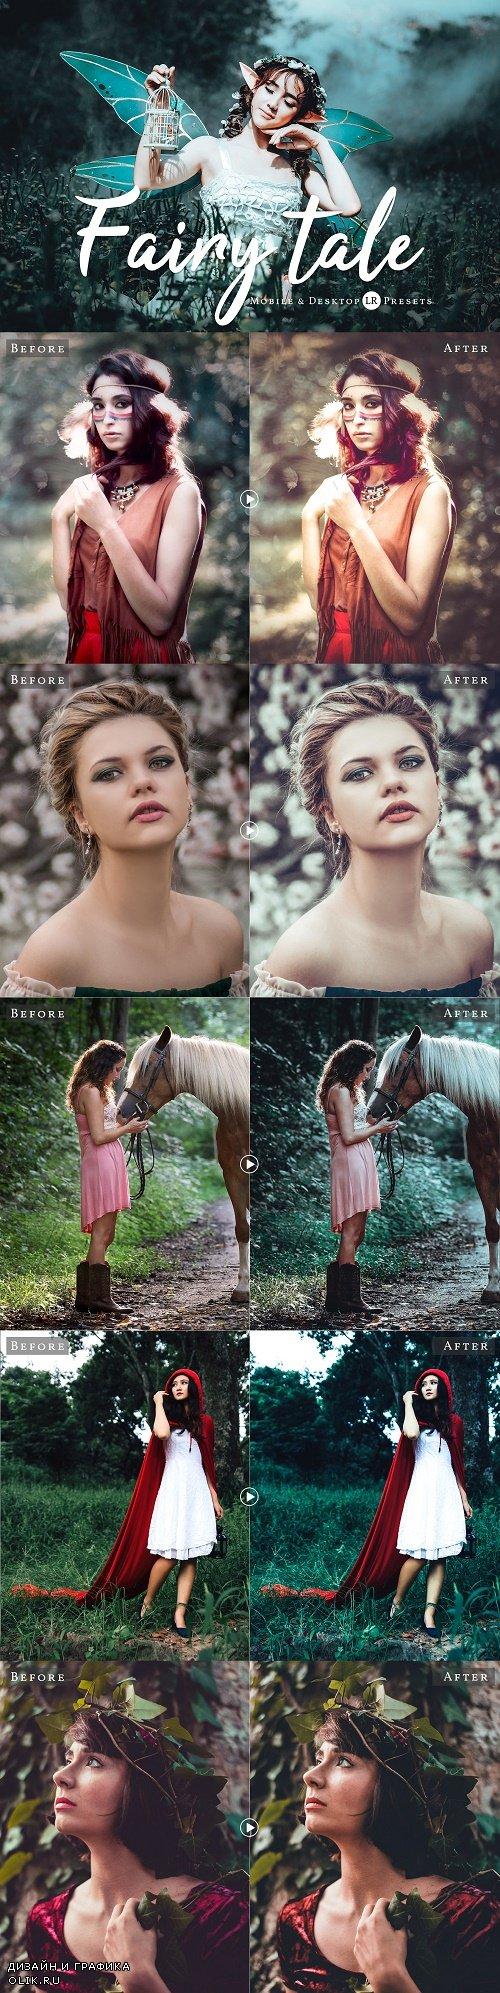 Fairytale Pro Lightroom Presets - 3373600